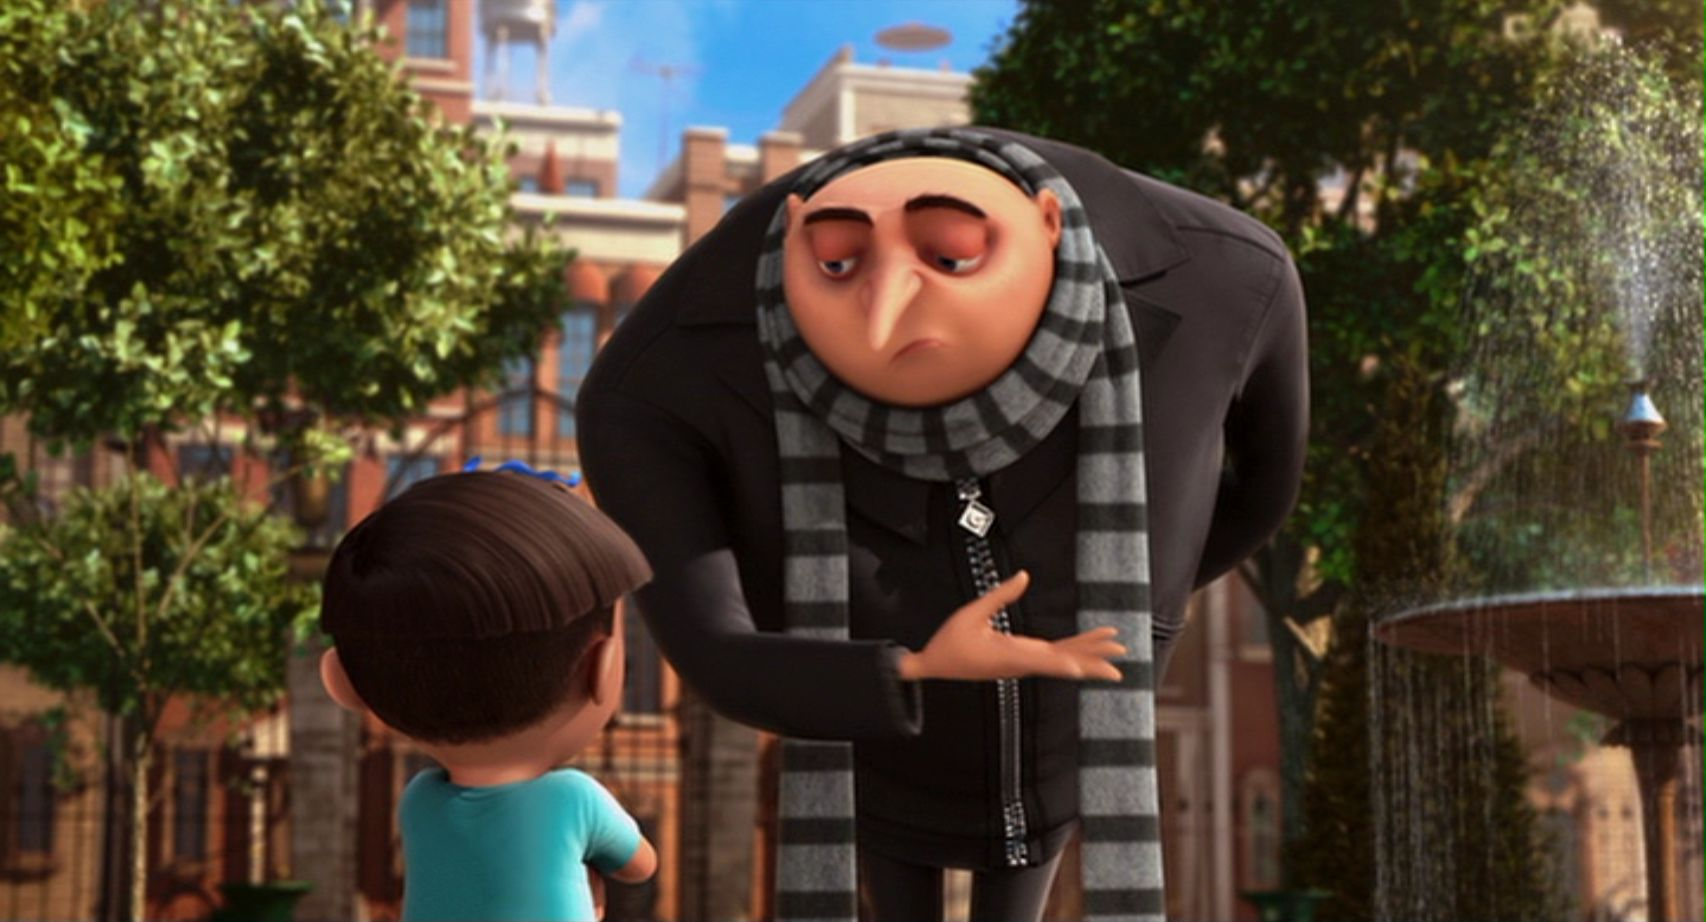 despicable me images despicable me full movie screencaps. Black Bedroom Furniture Sets. Home Design Ideas